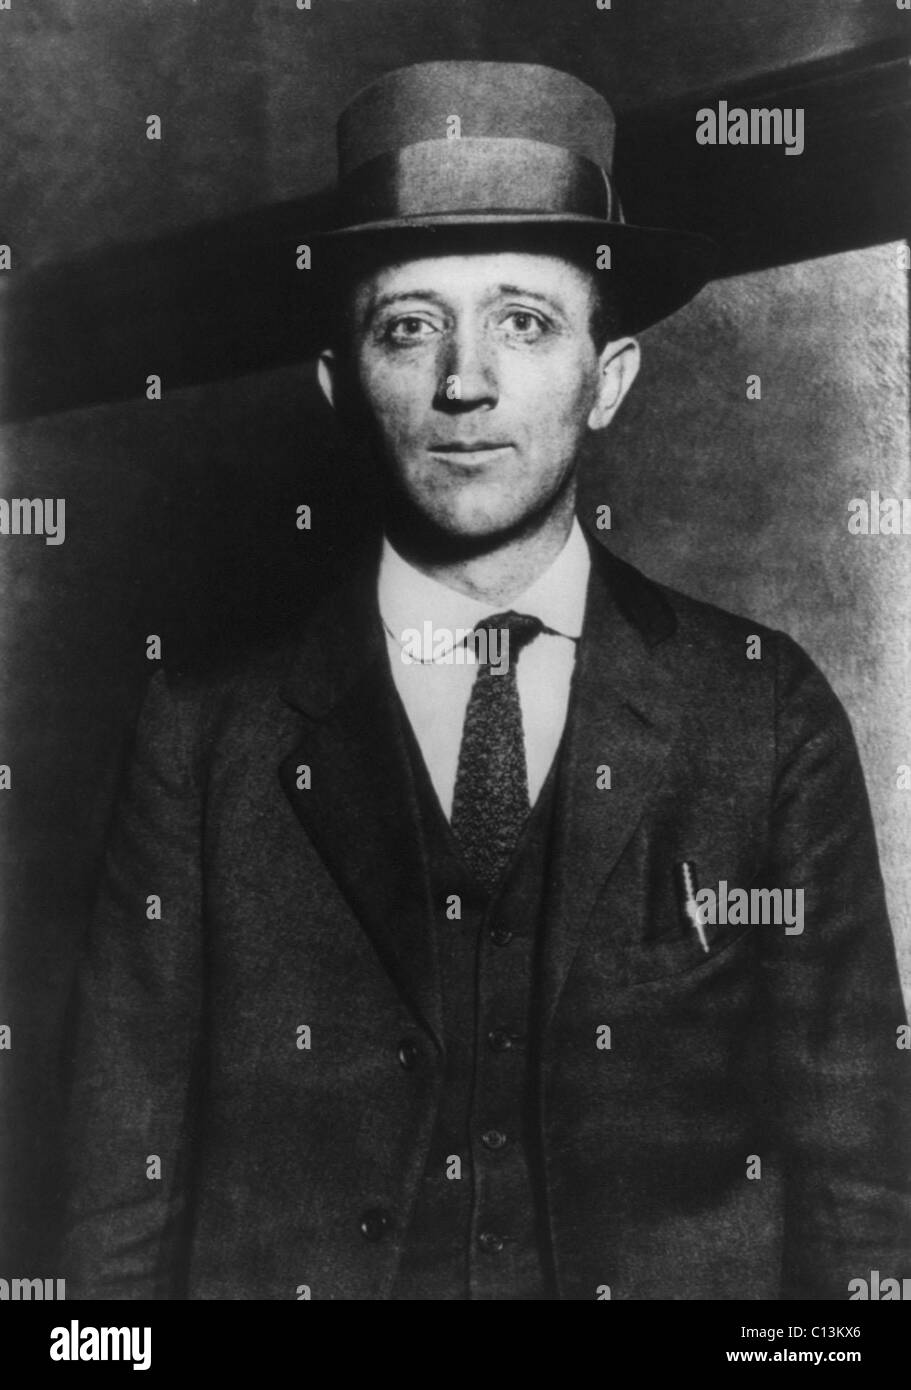 William Zebulon Foster (1881-1961), a radical American labor organizer associated with the Industrial Workers of - Stock Image